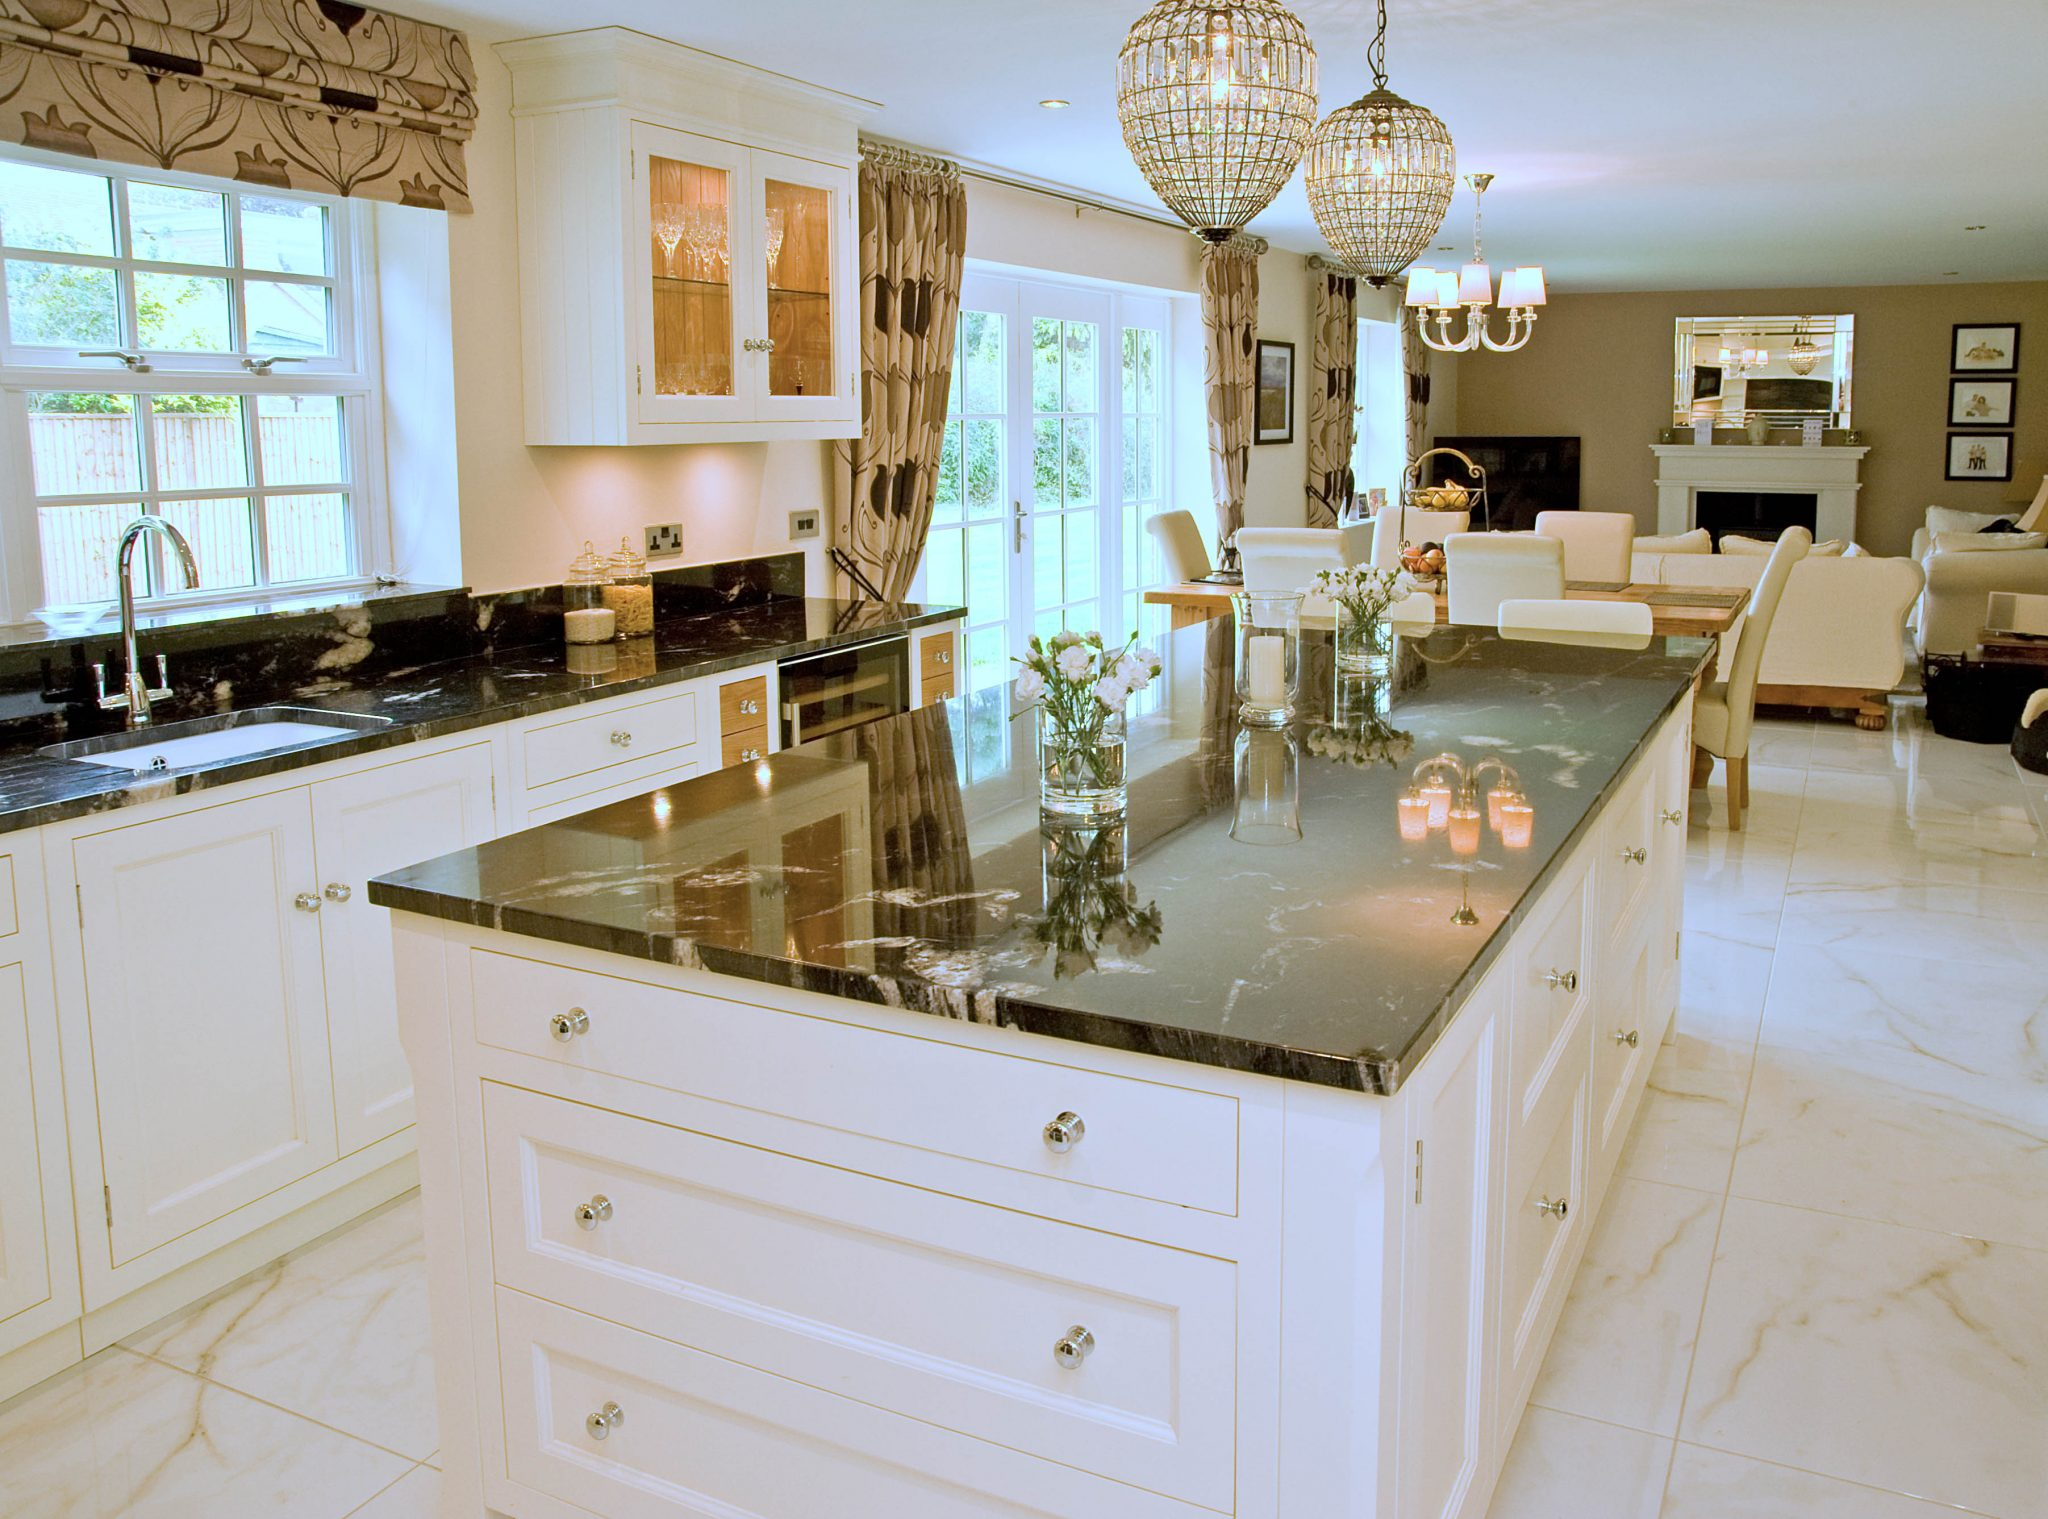 Bespoke Kitchen Designs Classic Lines & Materials